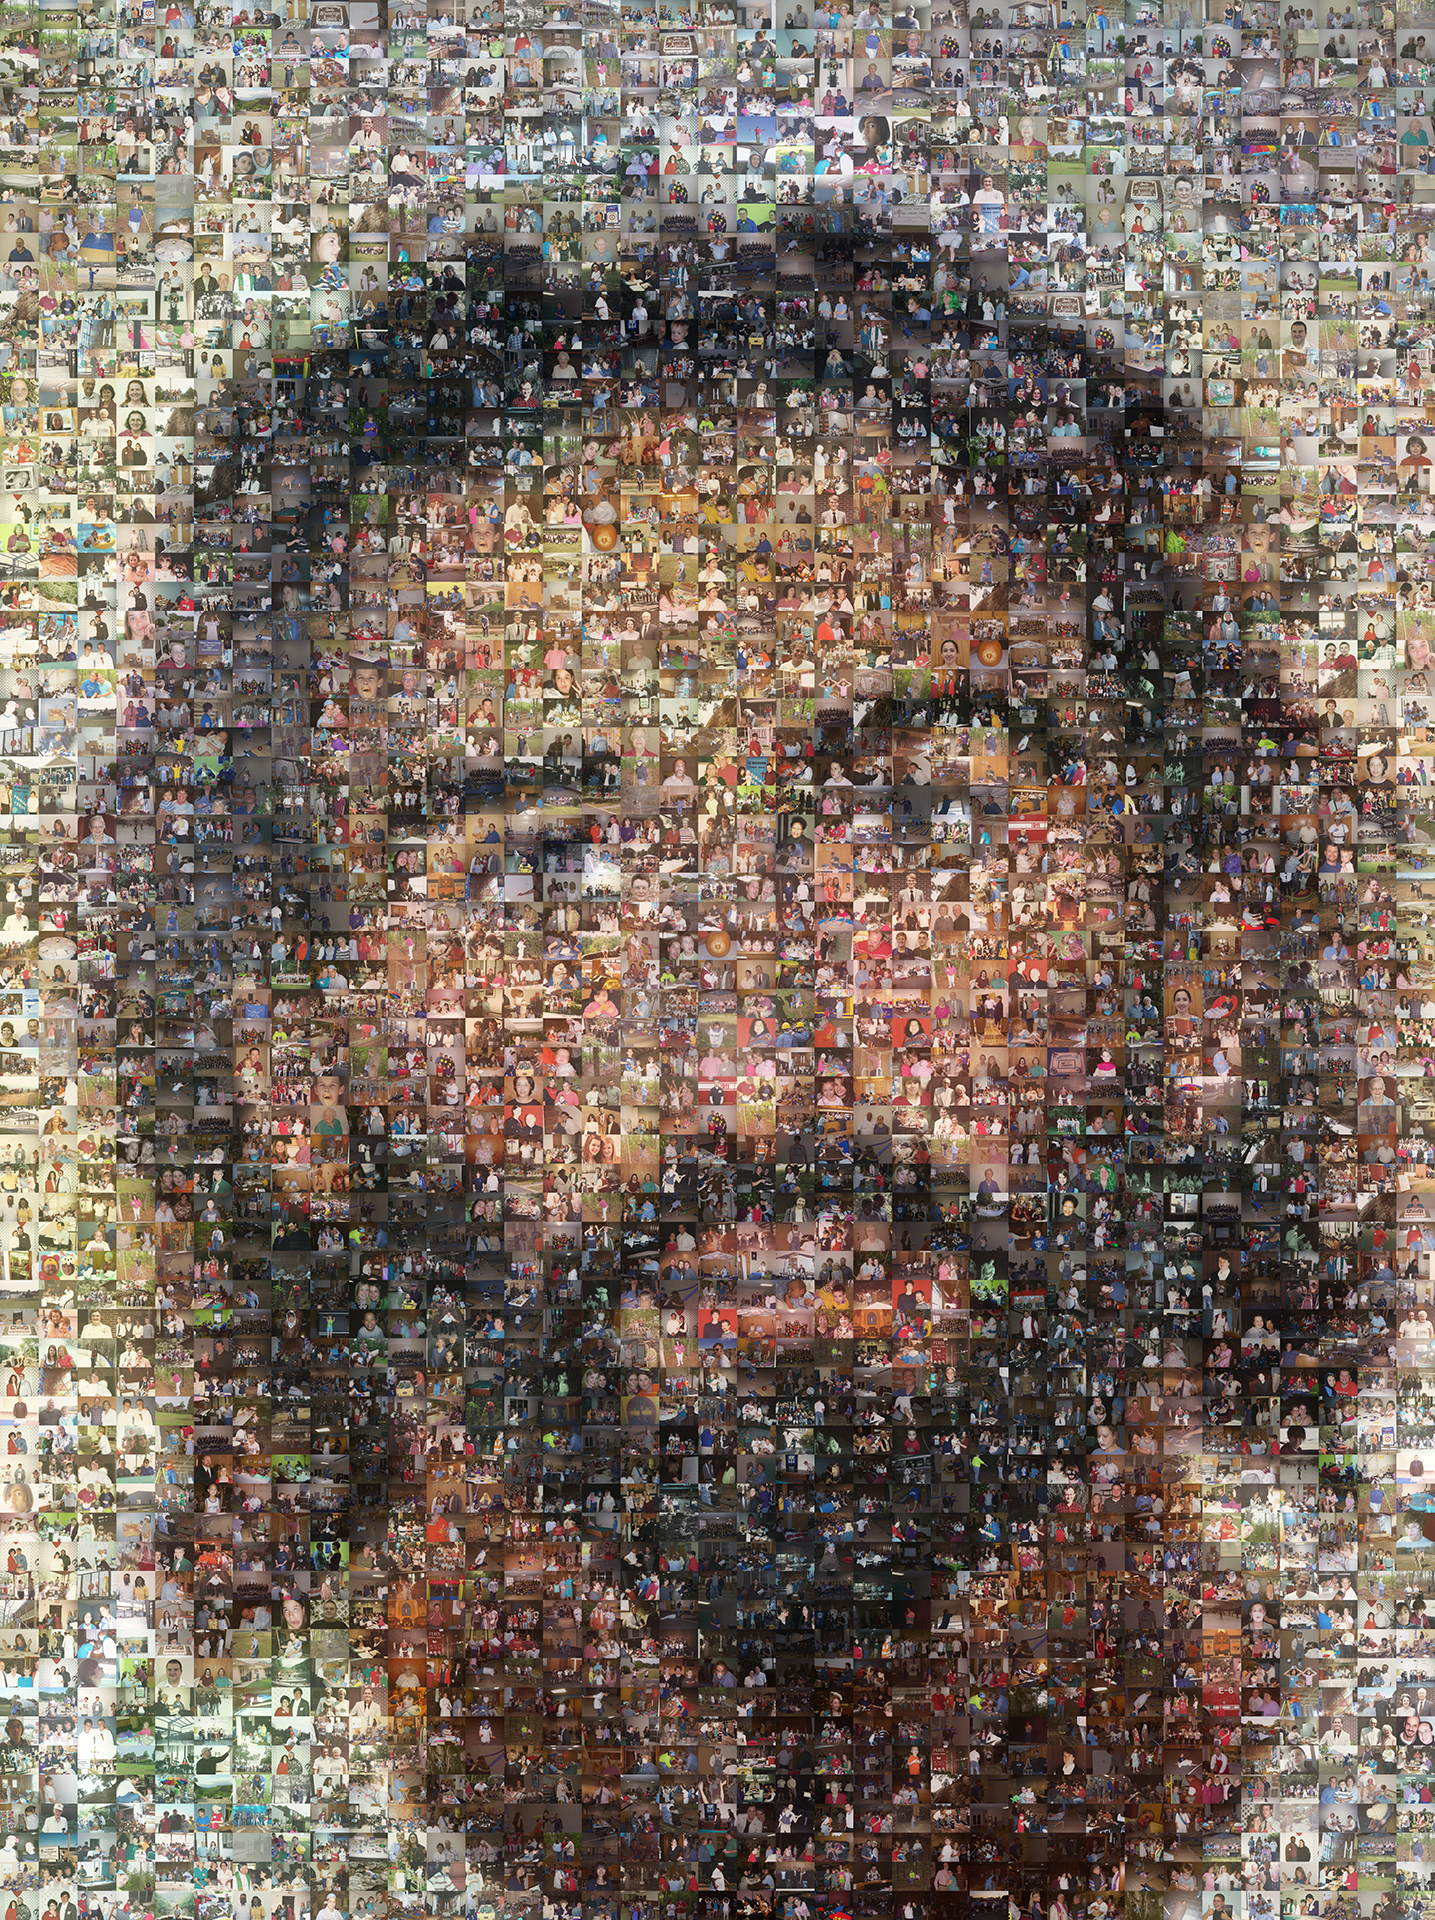 photo mosaic created using 2019 religious member photos